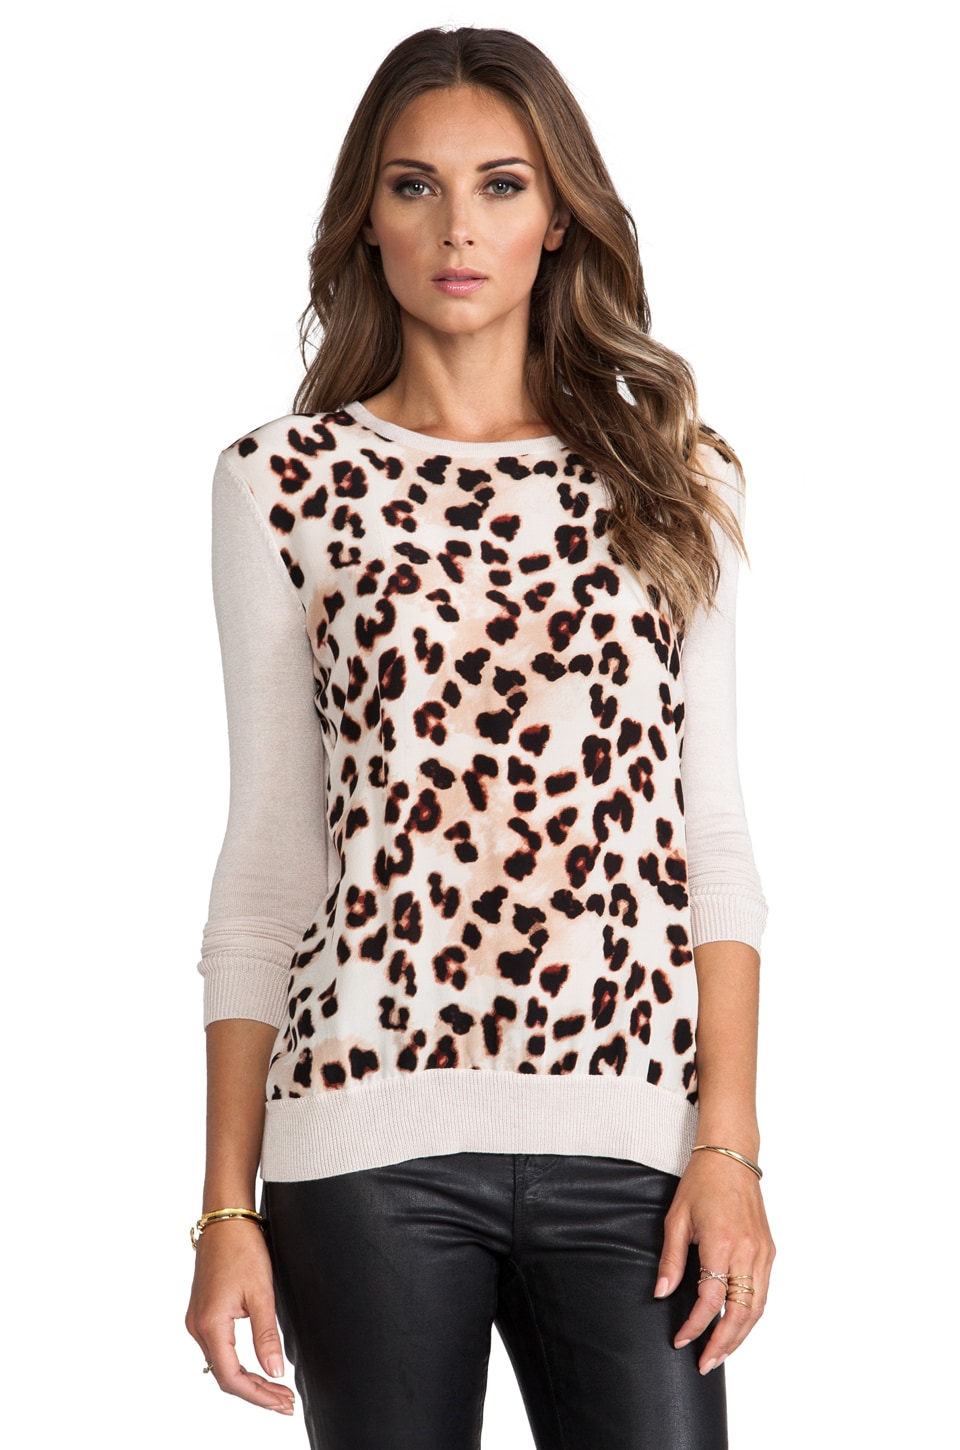 Central Park West Silk Animal Print Sweater in Cheetah